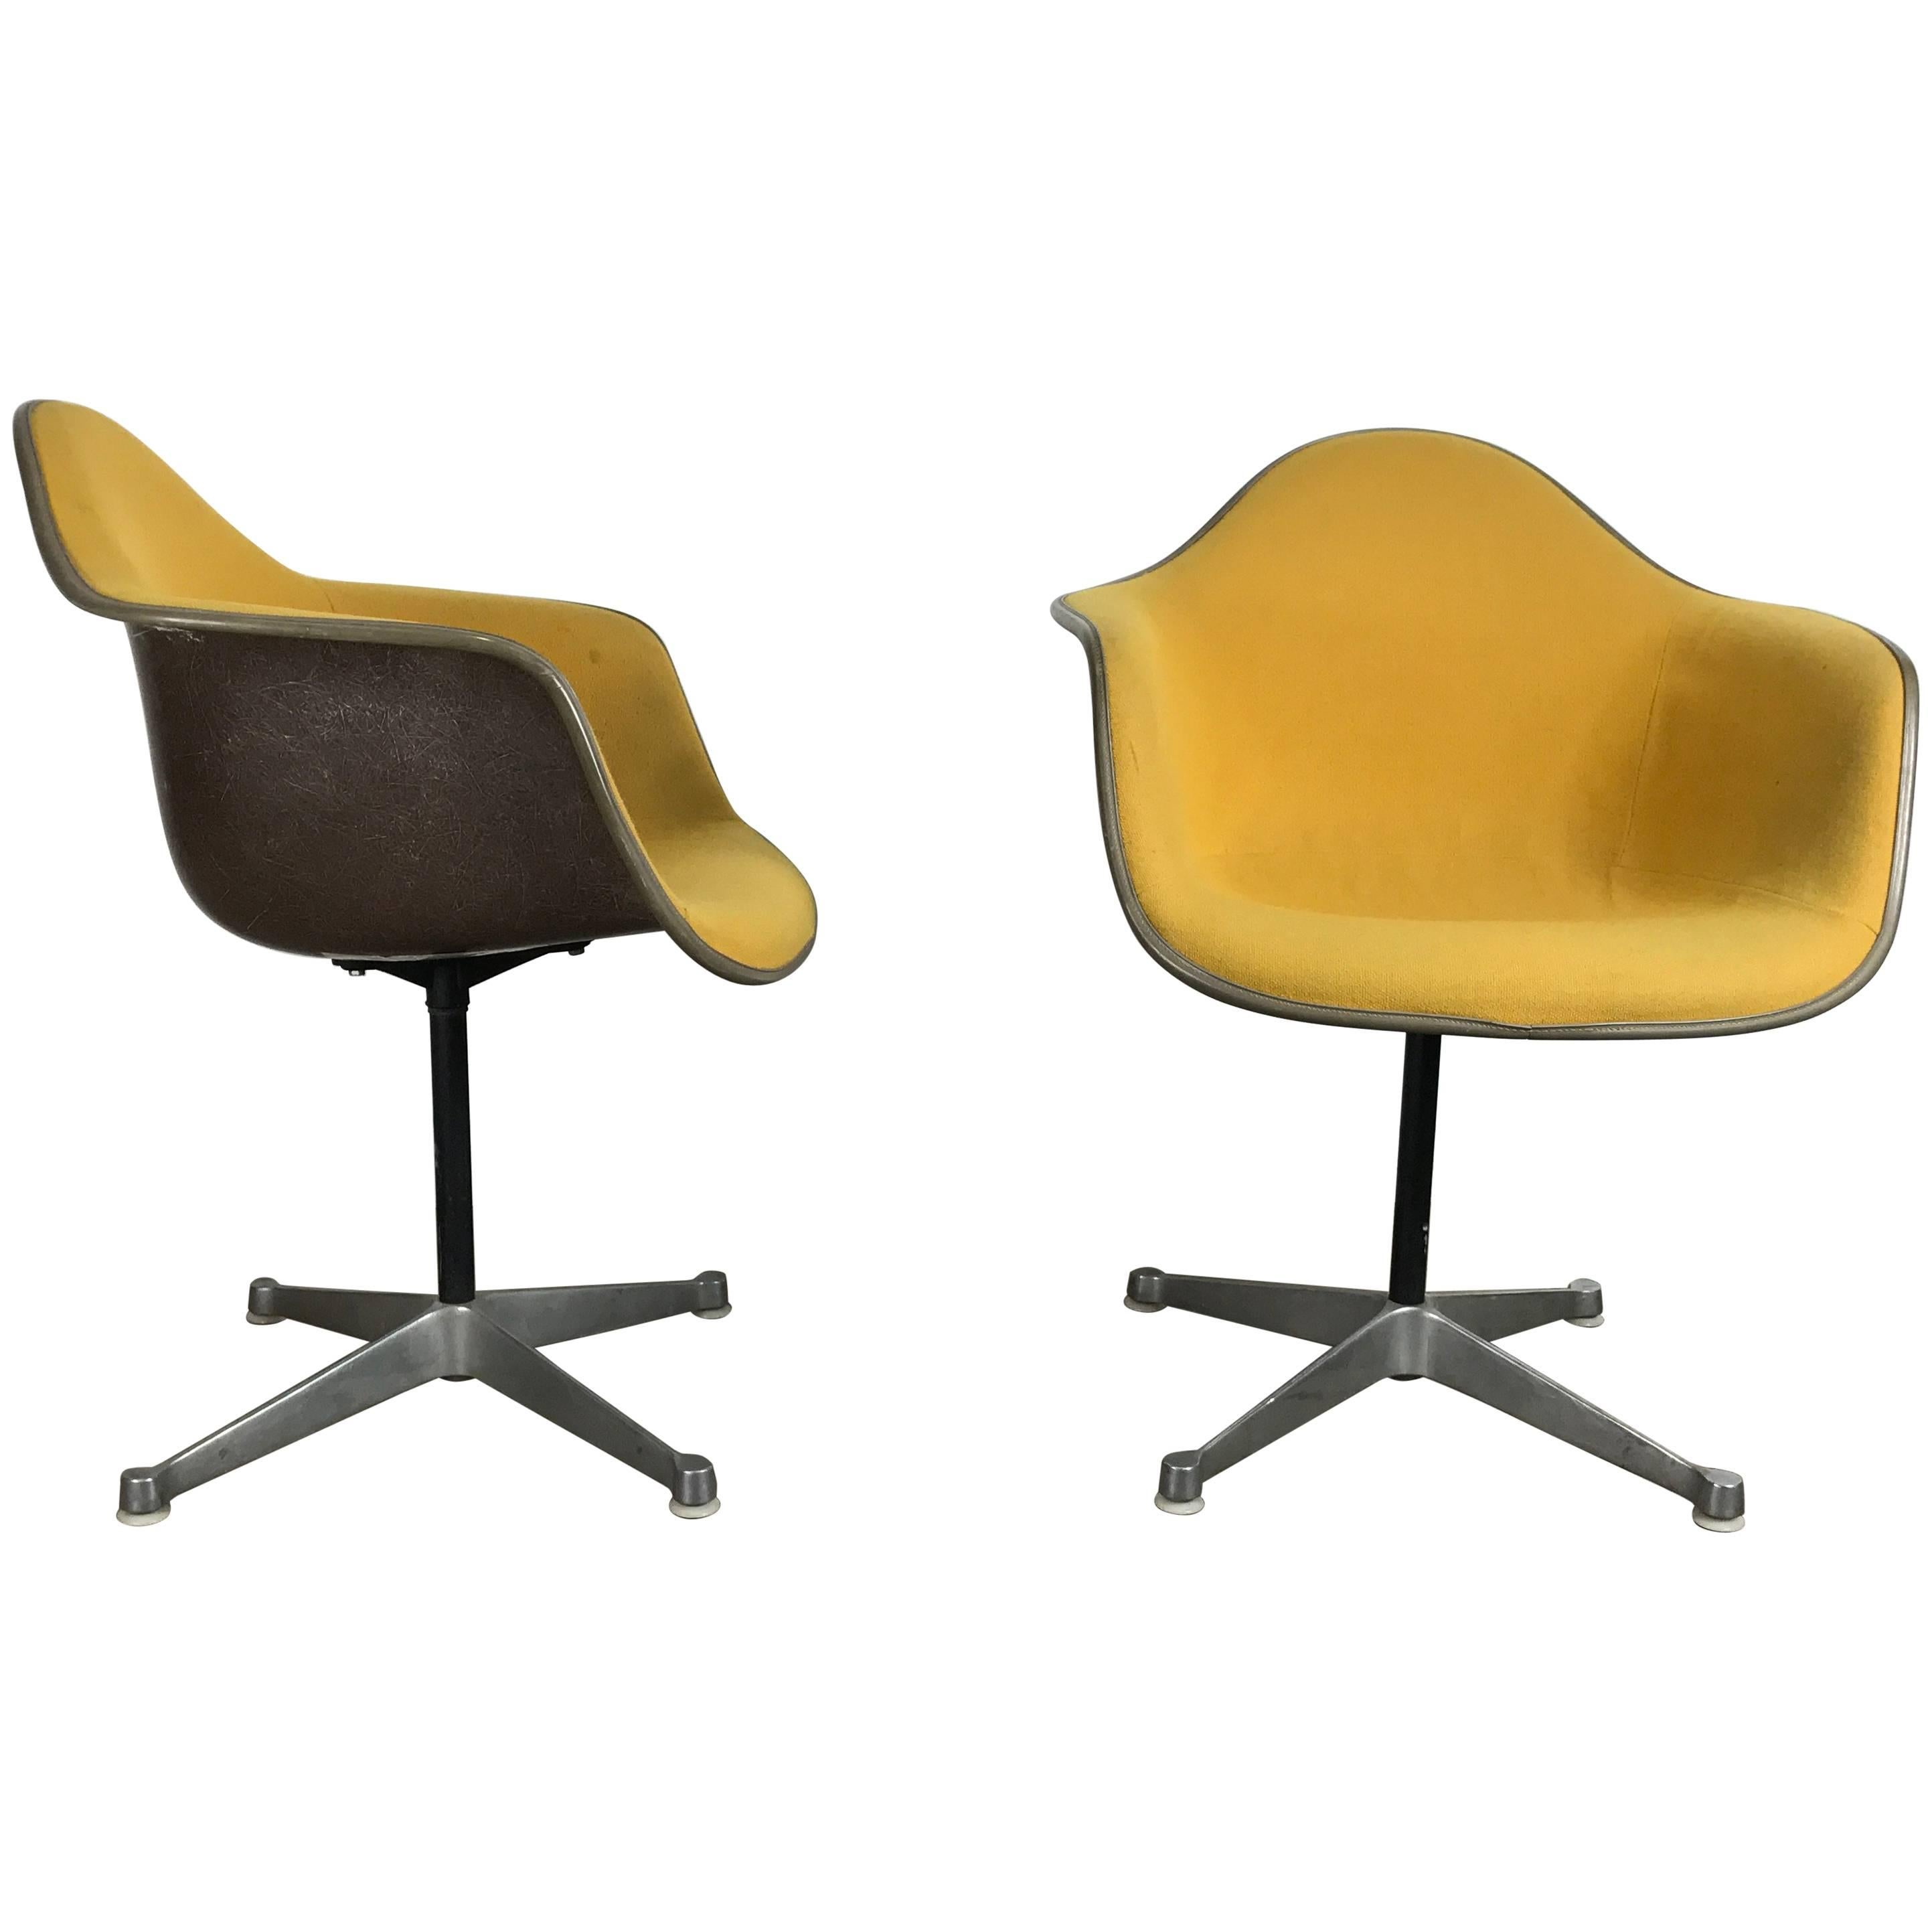 Pair of Charles and Ray Eames Swivel Padded Arm Shell Chairs, Two-Tone